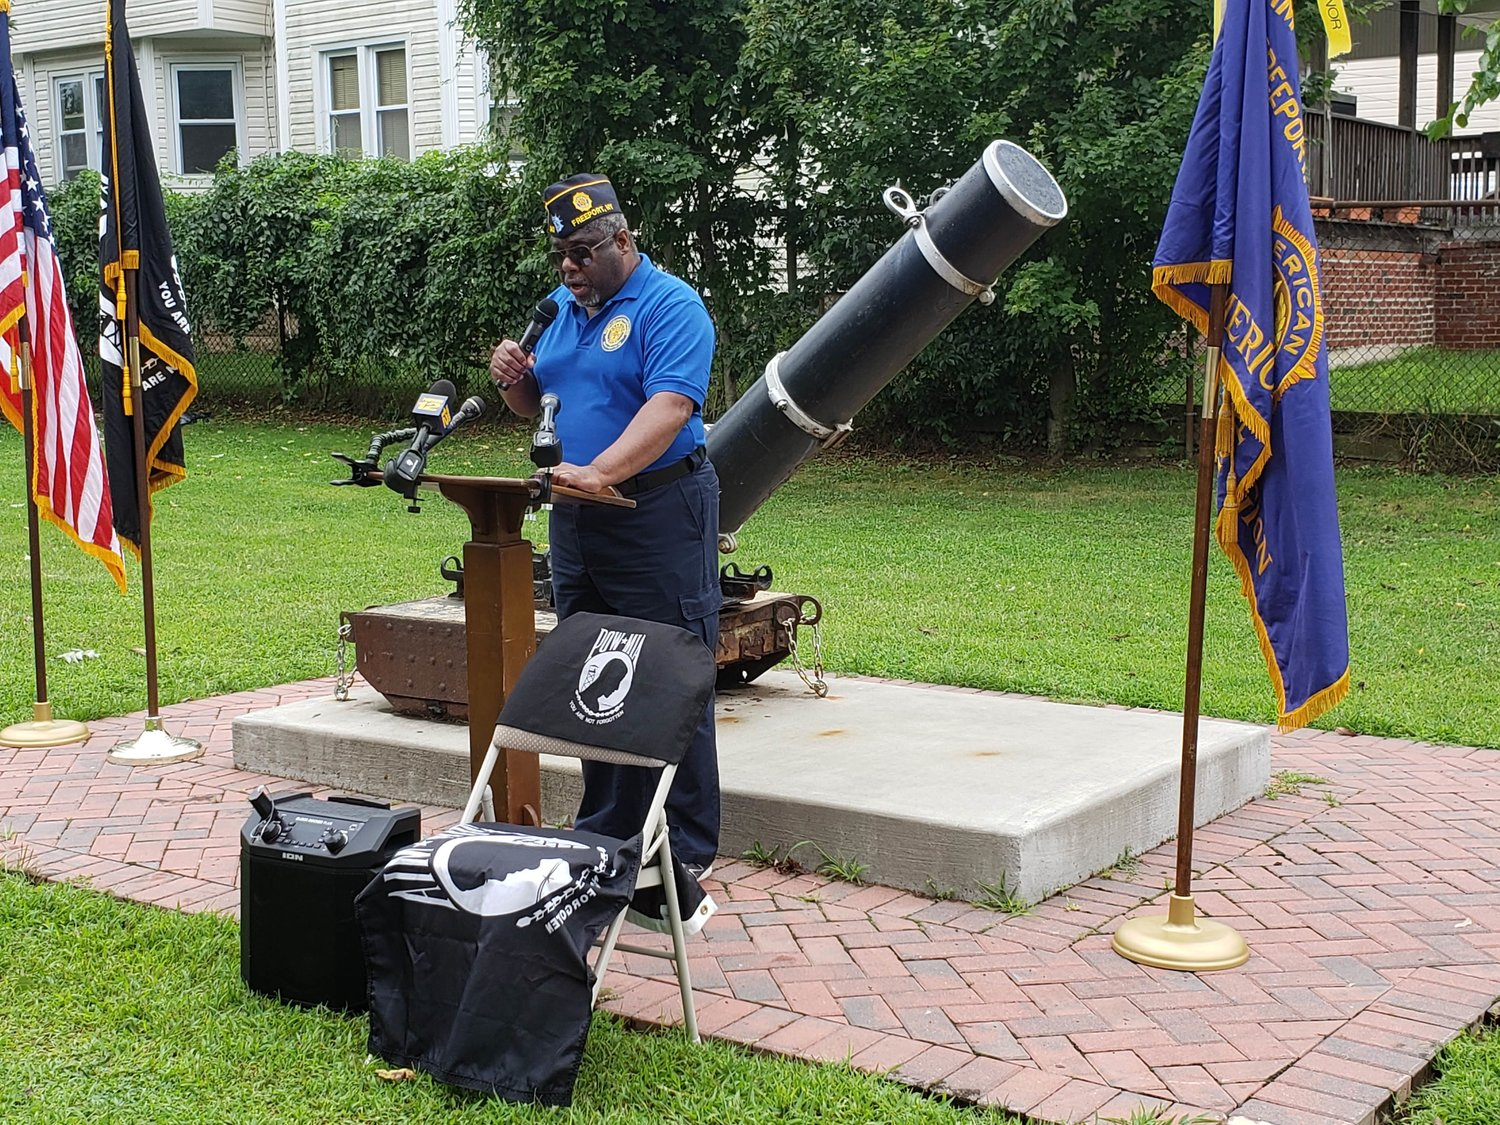 David Cockerel, adjutant and former commander of Freeport's William Clinton Story American Legion Post 342, spoke about the history of the American Legion at a ceremony commemorating its centennial last Friday.